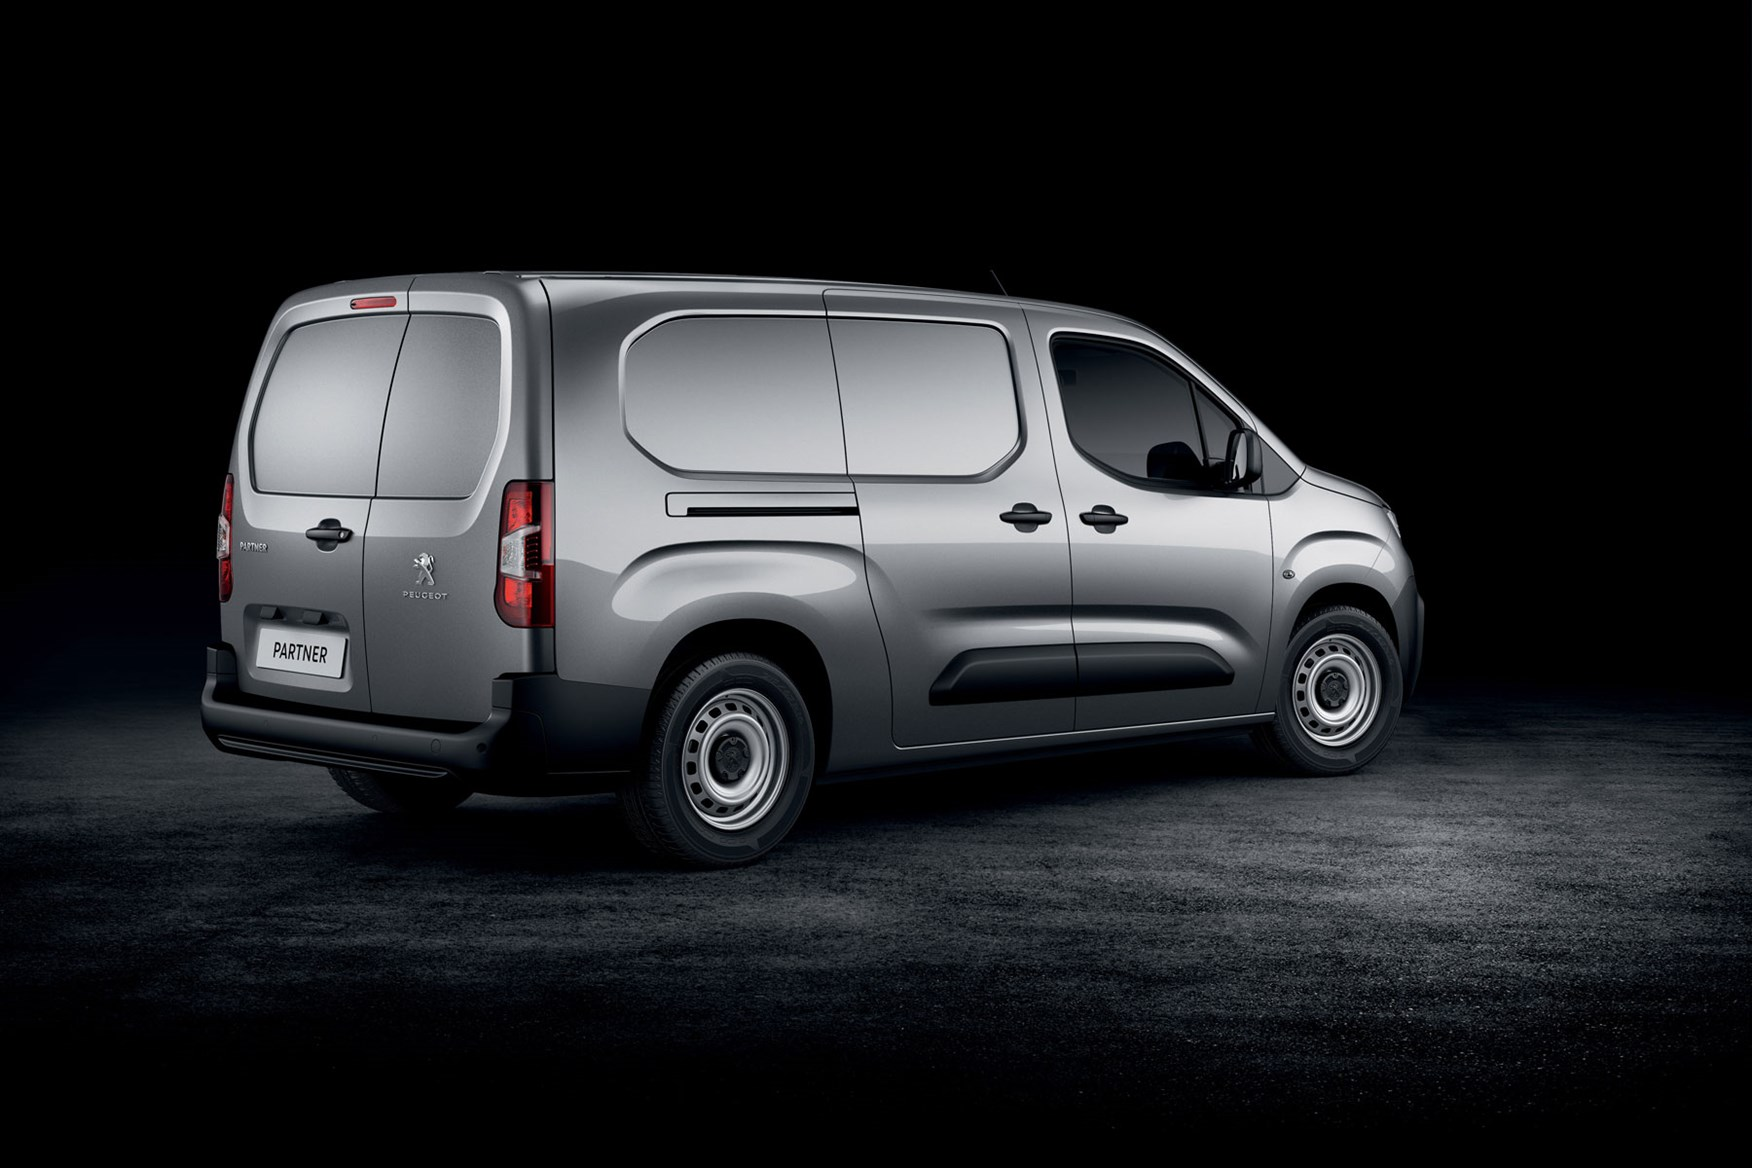 peugeot partner 2018 new small van official pictures info tech details and dimensions parkers. Black Bedroom Furniture Sets. Home Design Ideas